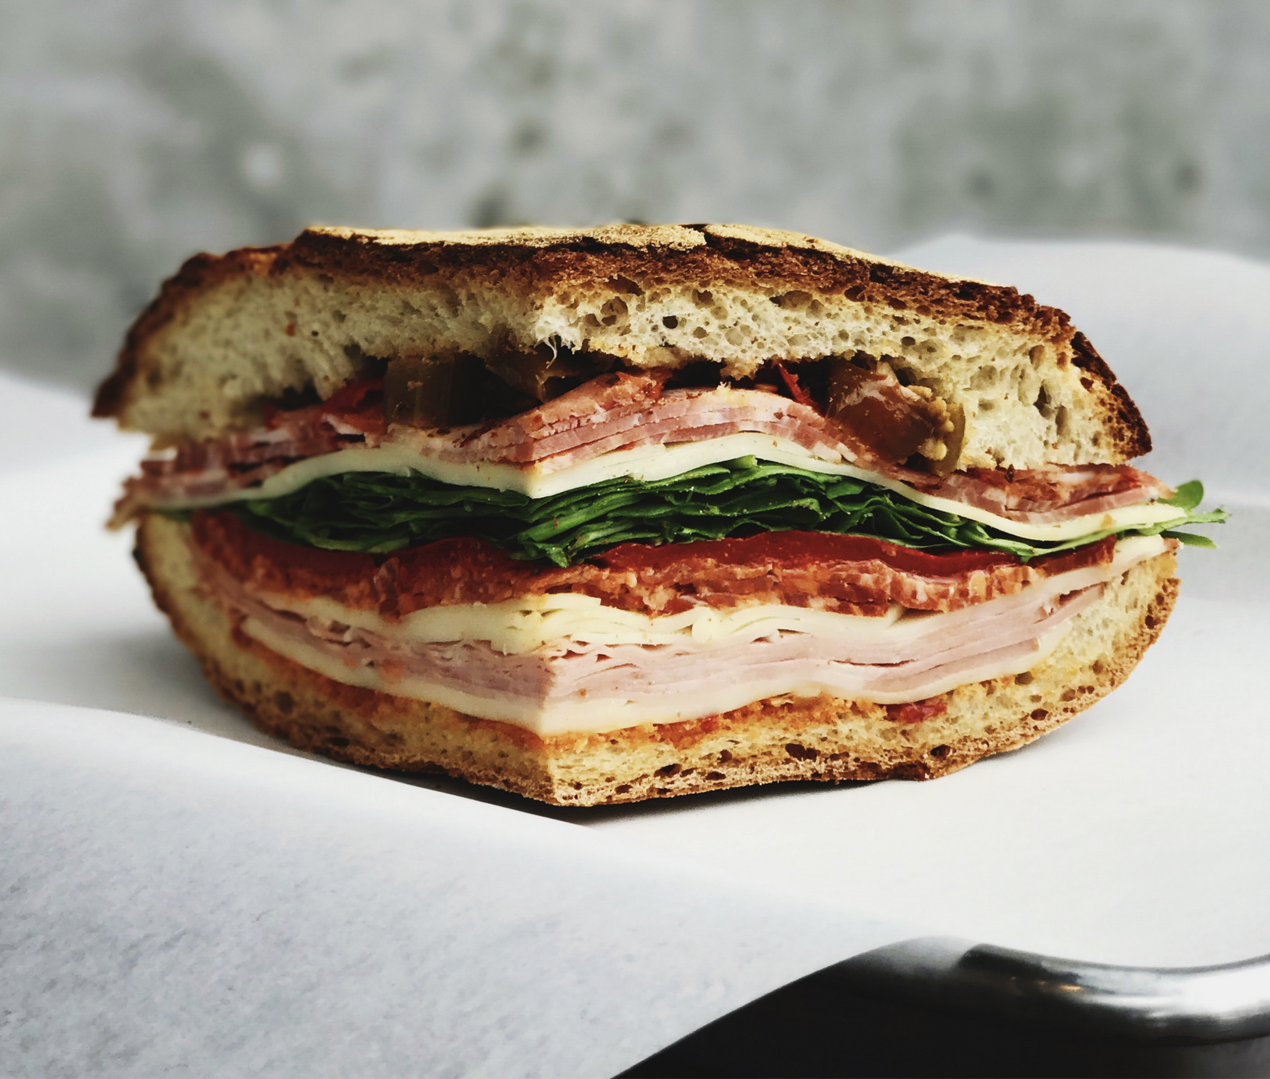 A sandwich on fresh-bakes ciabatta from Saggio's Scratch Italian Kitchen